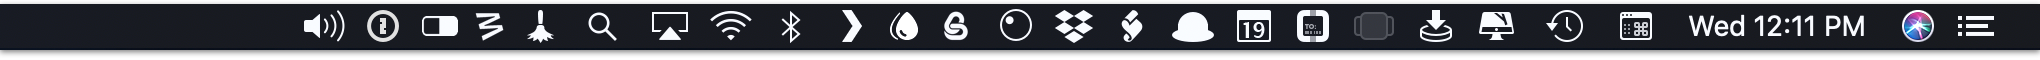 Manage menu bar icons and make your Mac Desktop look cool & tidy.